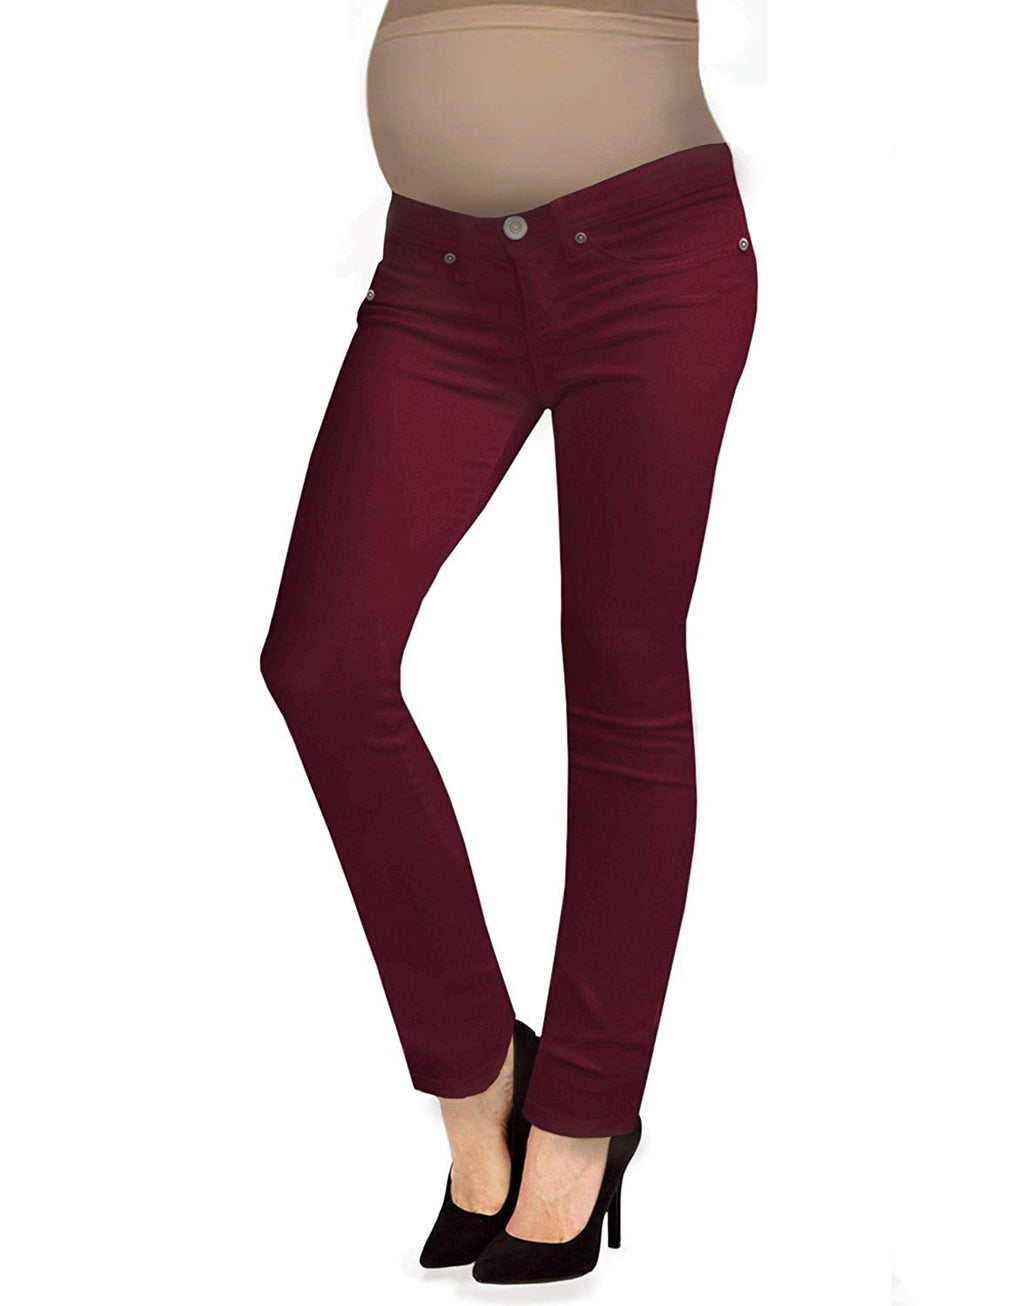 Maroon Stretch Bootcut Maternity Jeans - Mommylicious